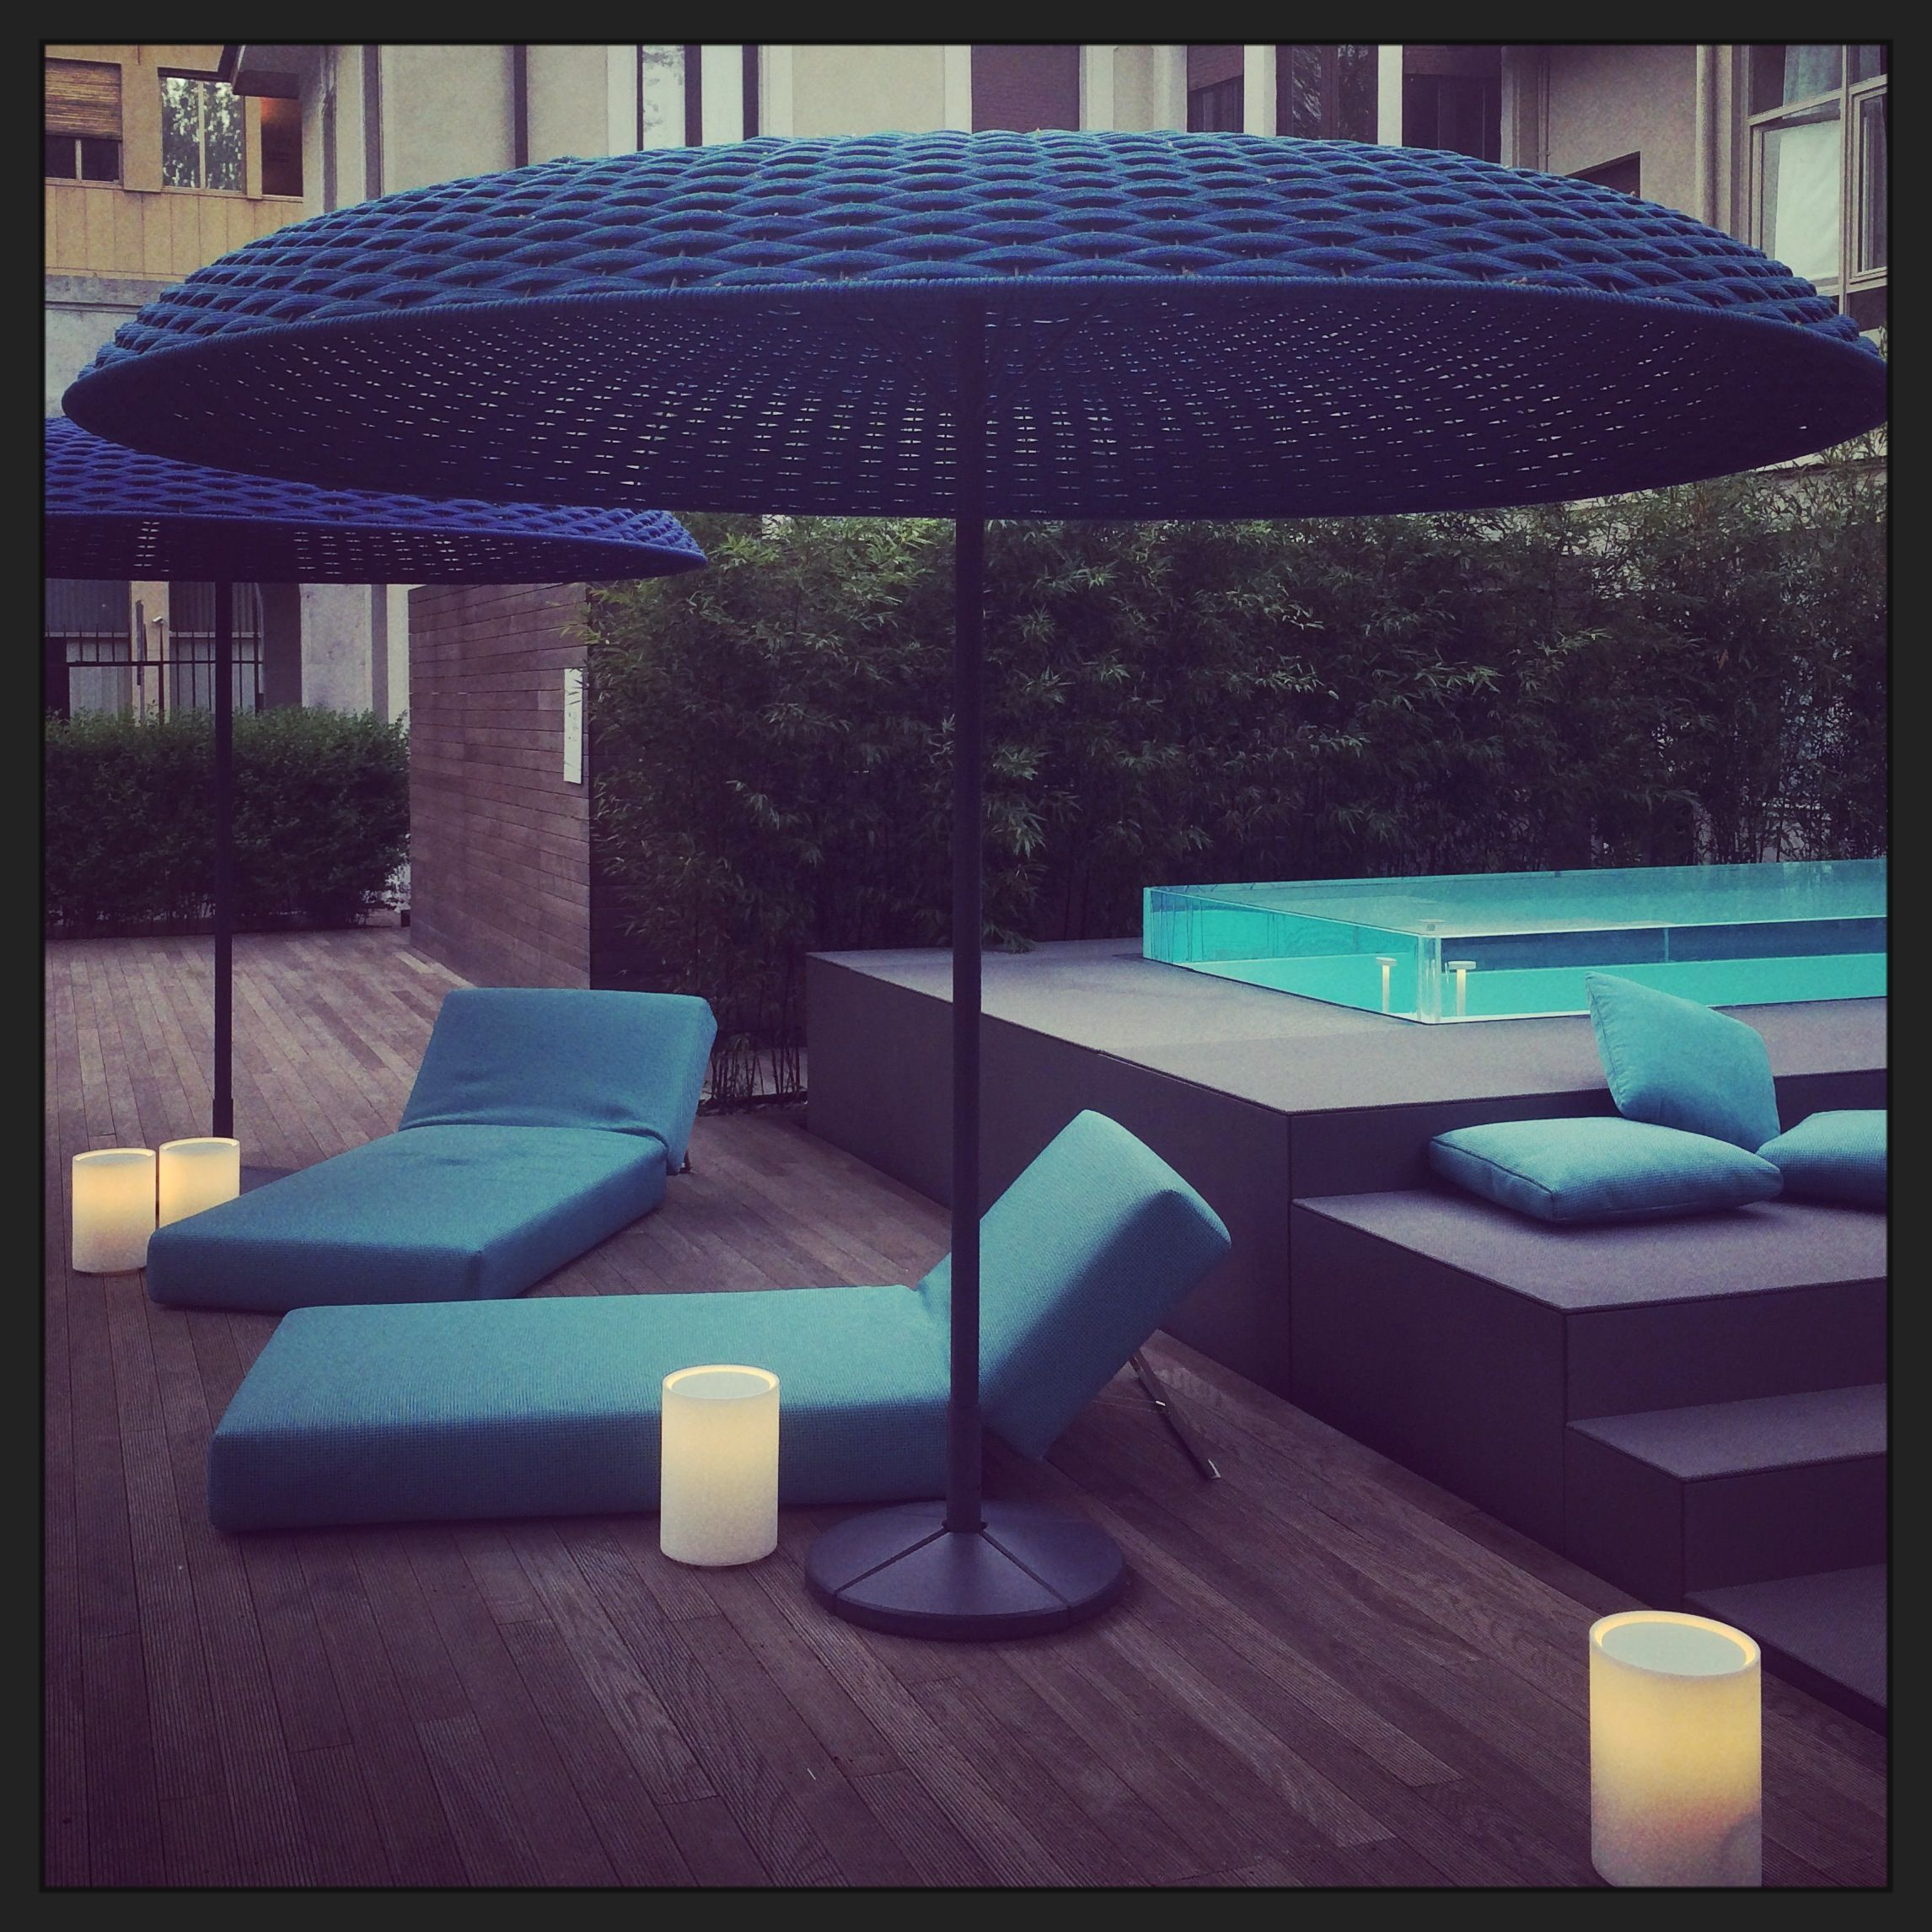 of best with umbrella for decoration furniture walmart plants and patio elegant red graphics chaise lounges exciting ideas table home double potted photos